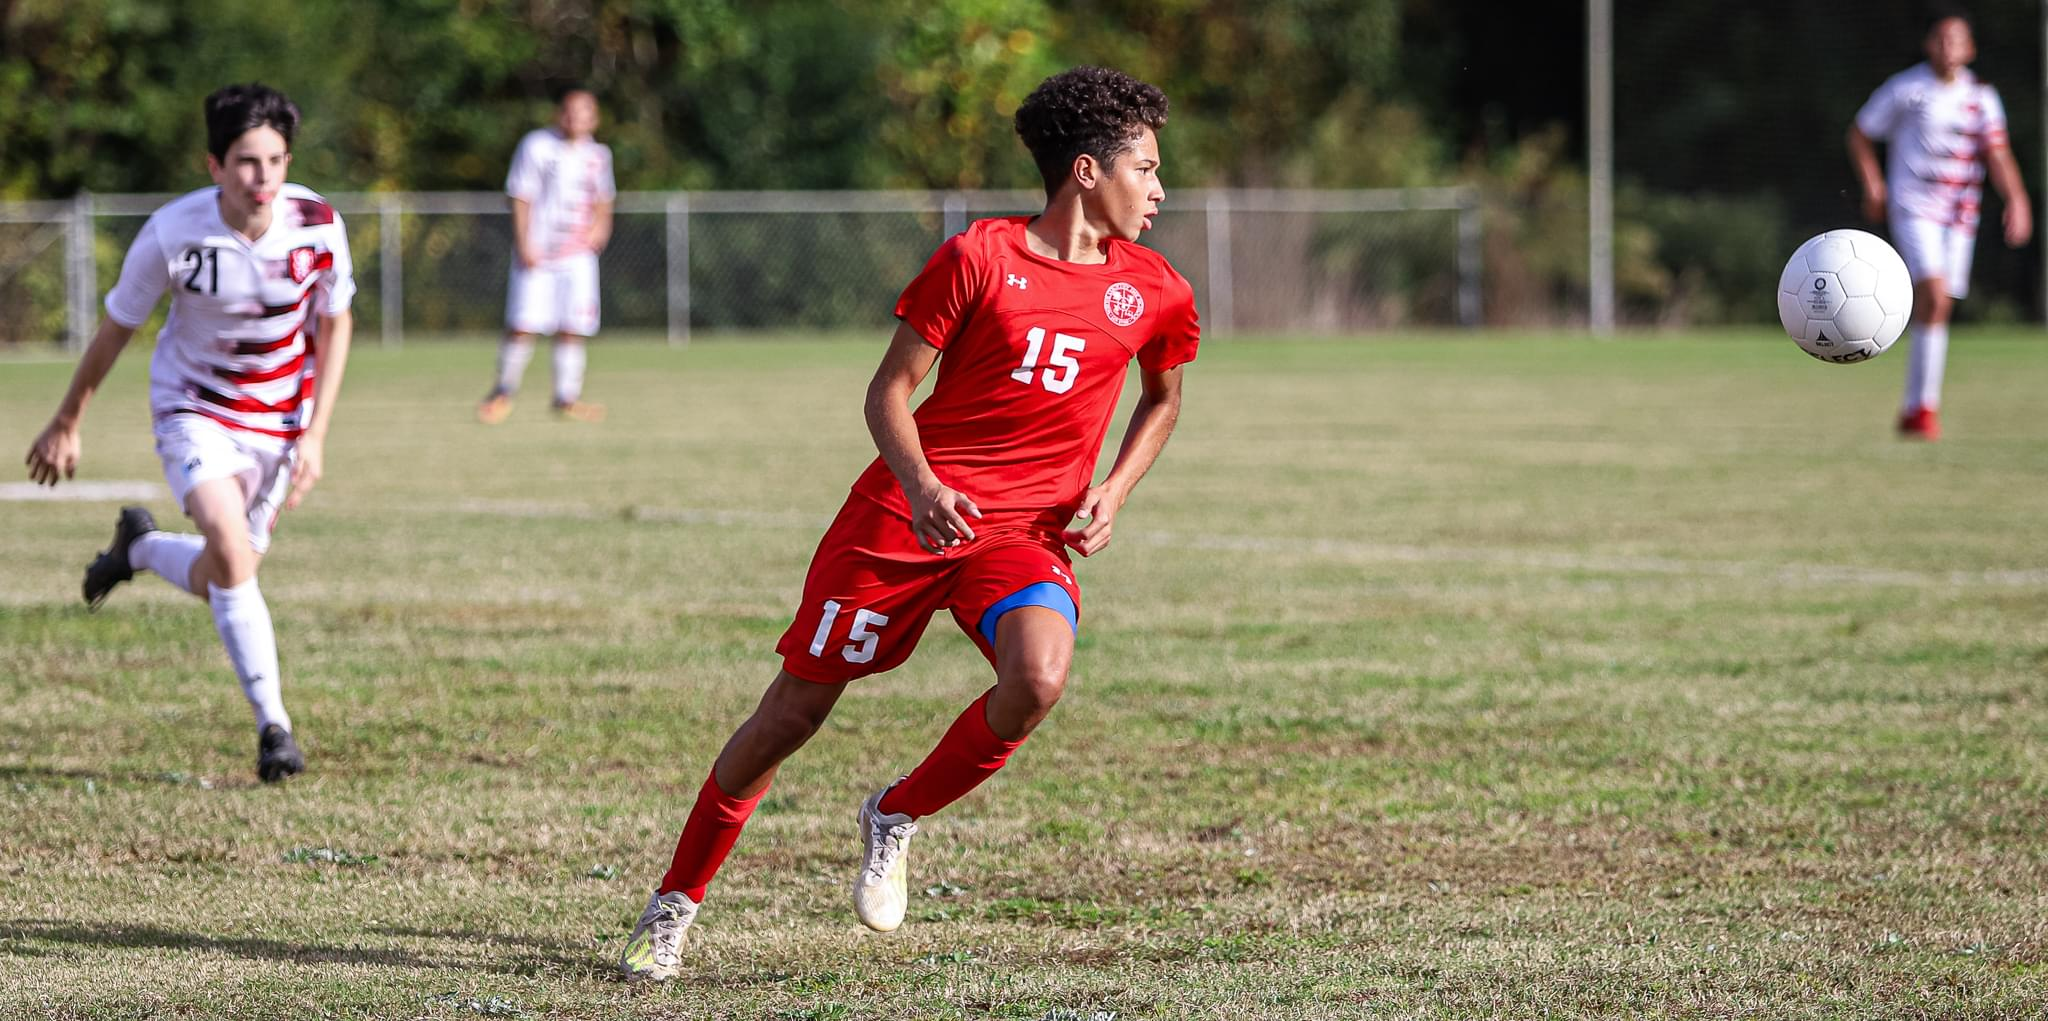 Boys' Soccer: Wayne Country Day Advances To NCISAA 2A Semifinals